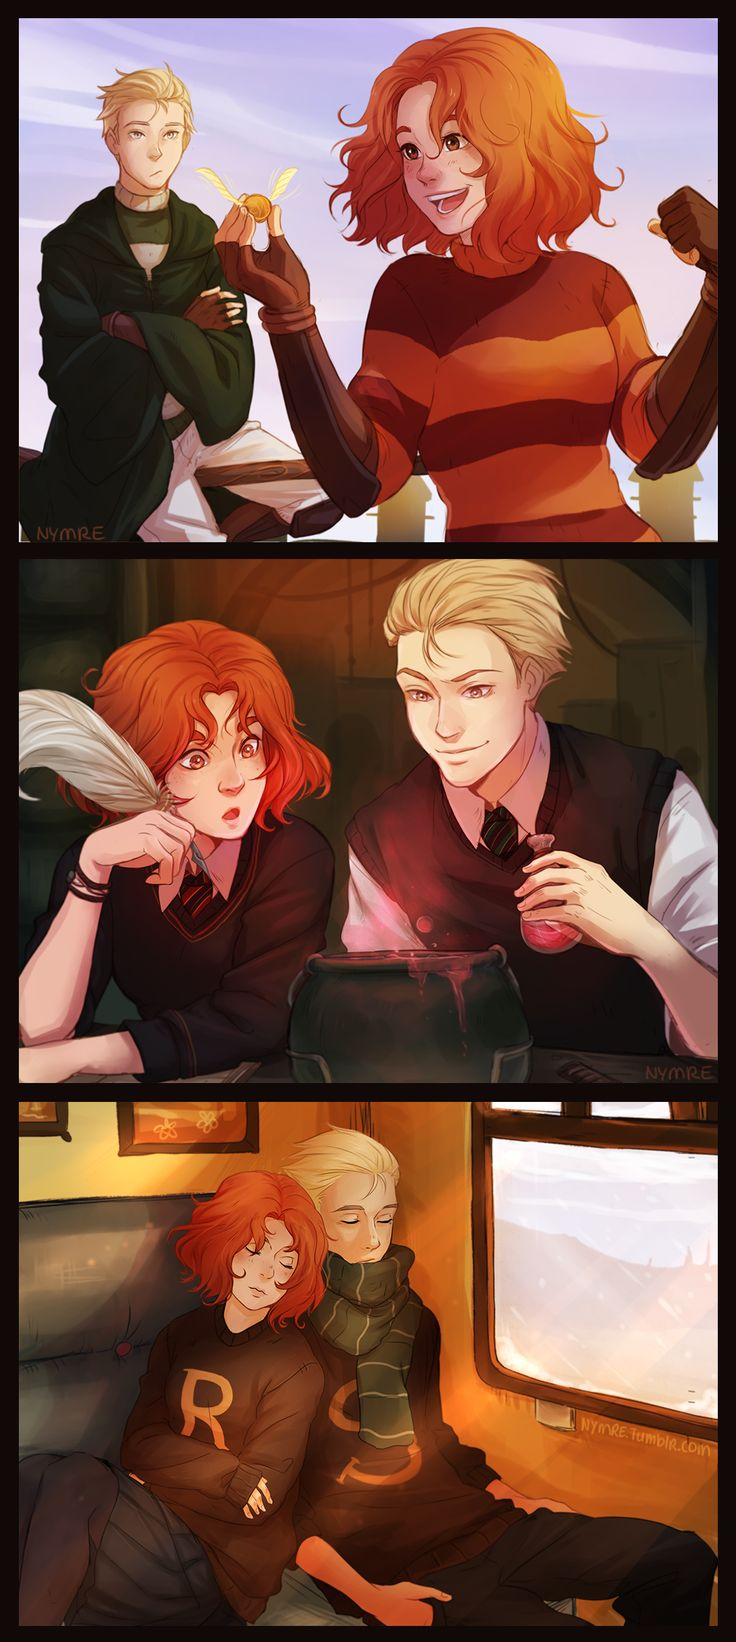 Scorose by nymre on DeviantArt---ok, so I know this is supposed to be Scorpius and Rose, but I ship Draco and Ginny so hard that my mind can only see it as them.